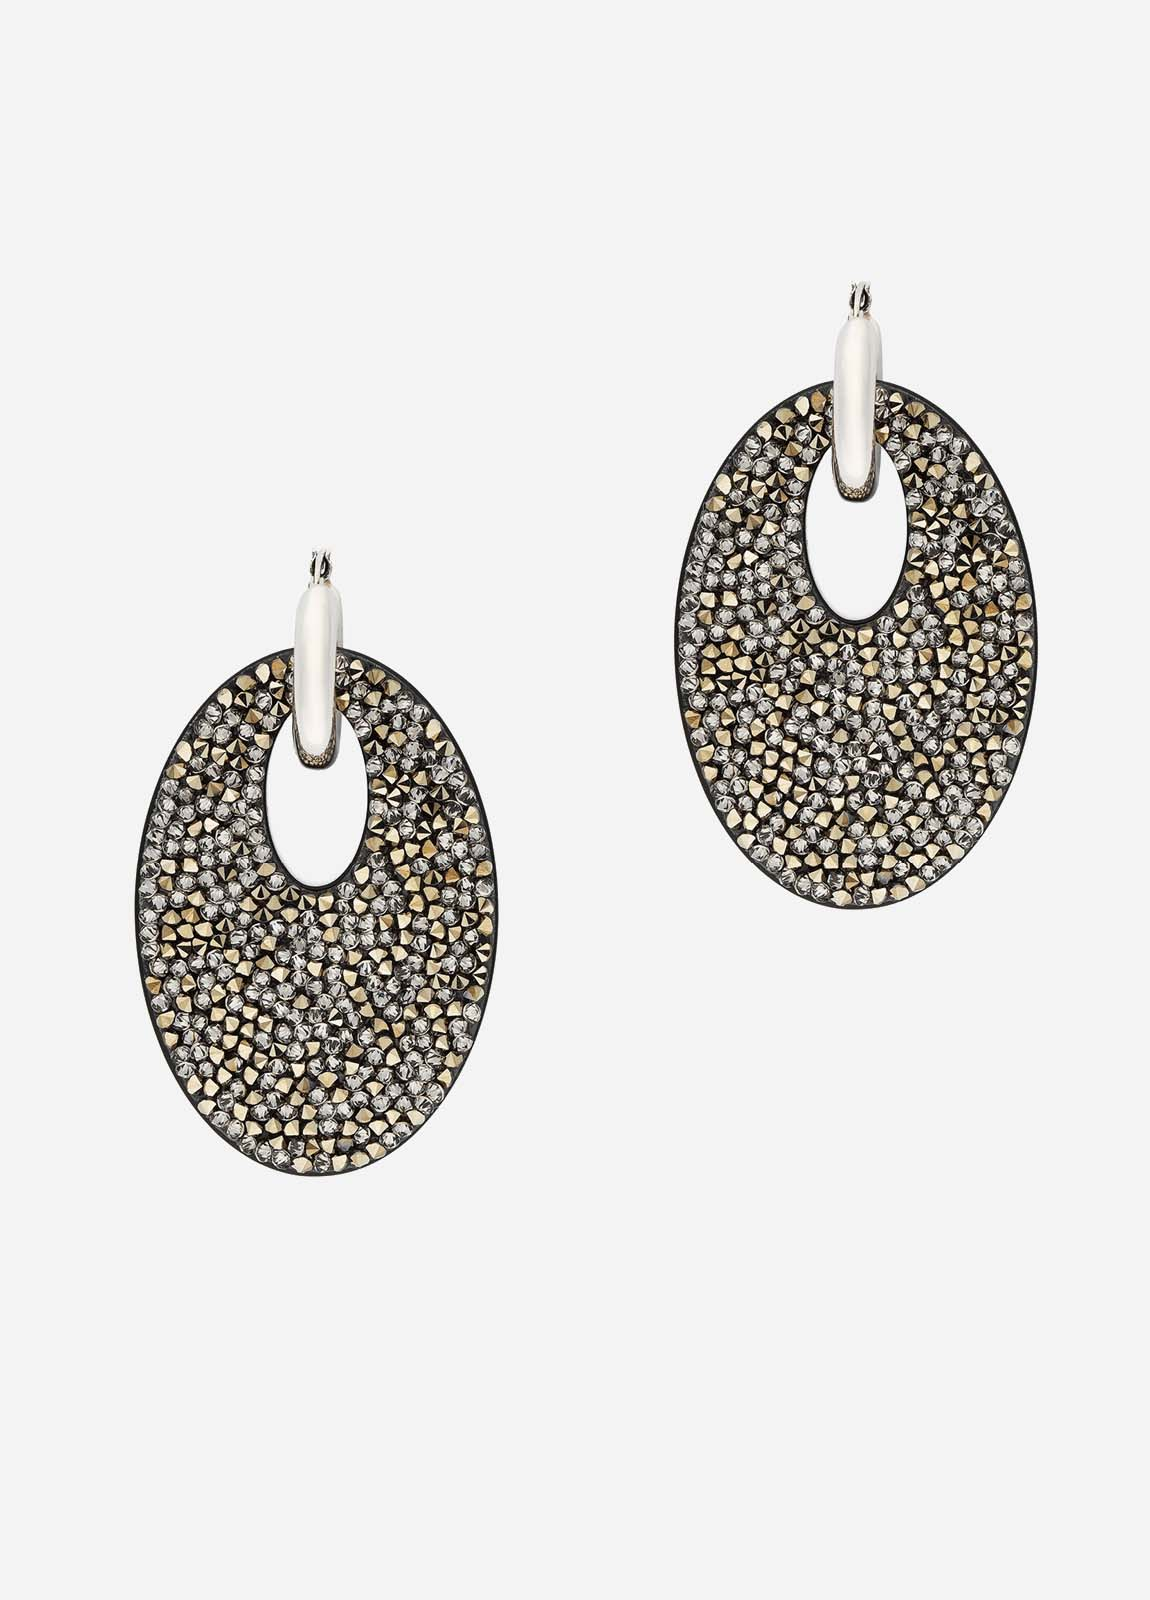 Alexandra Earrings, Grande, Women, Silver